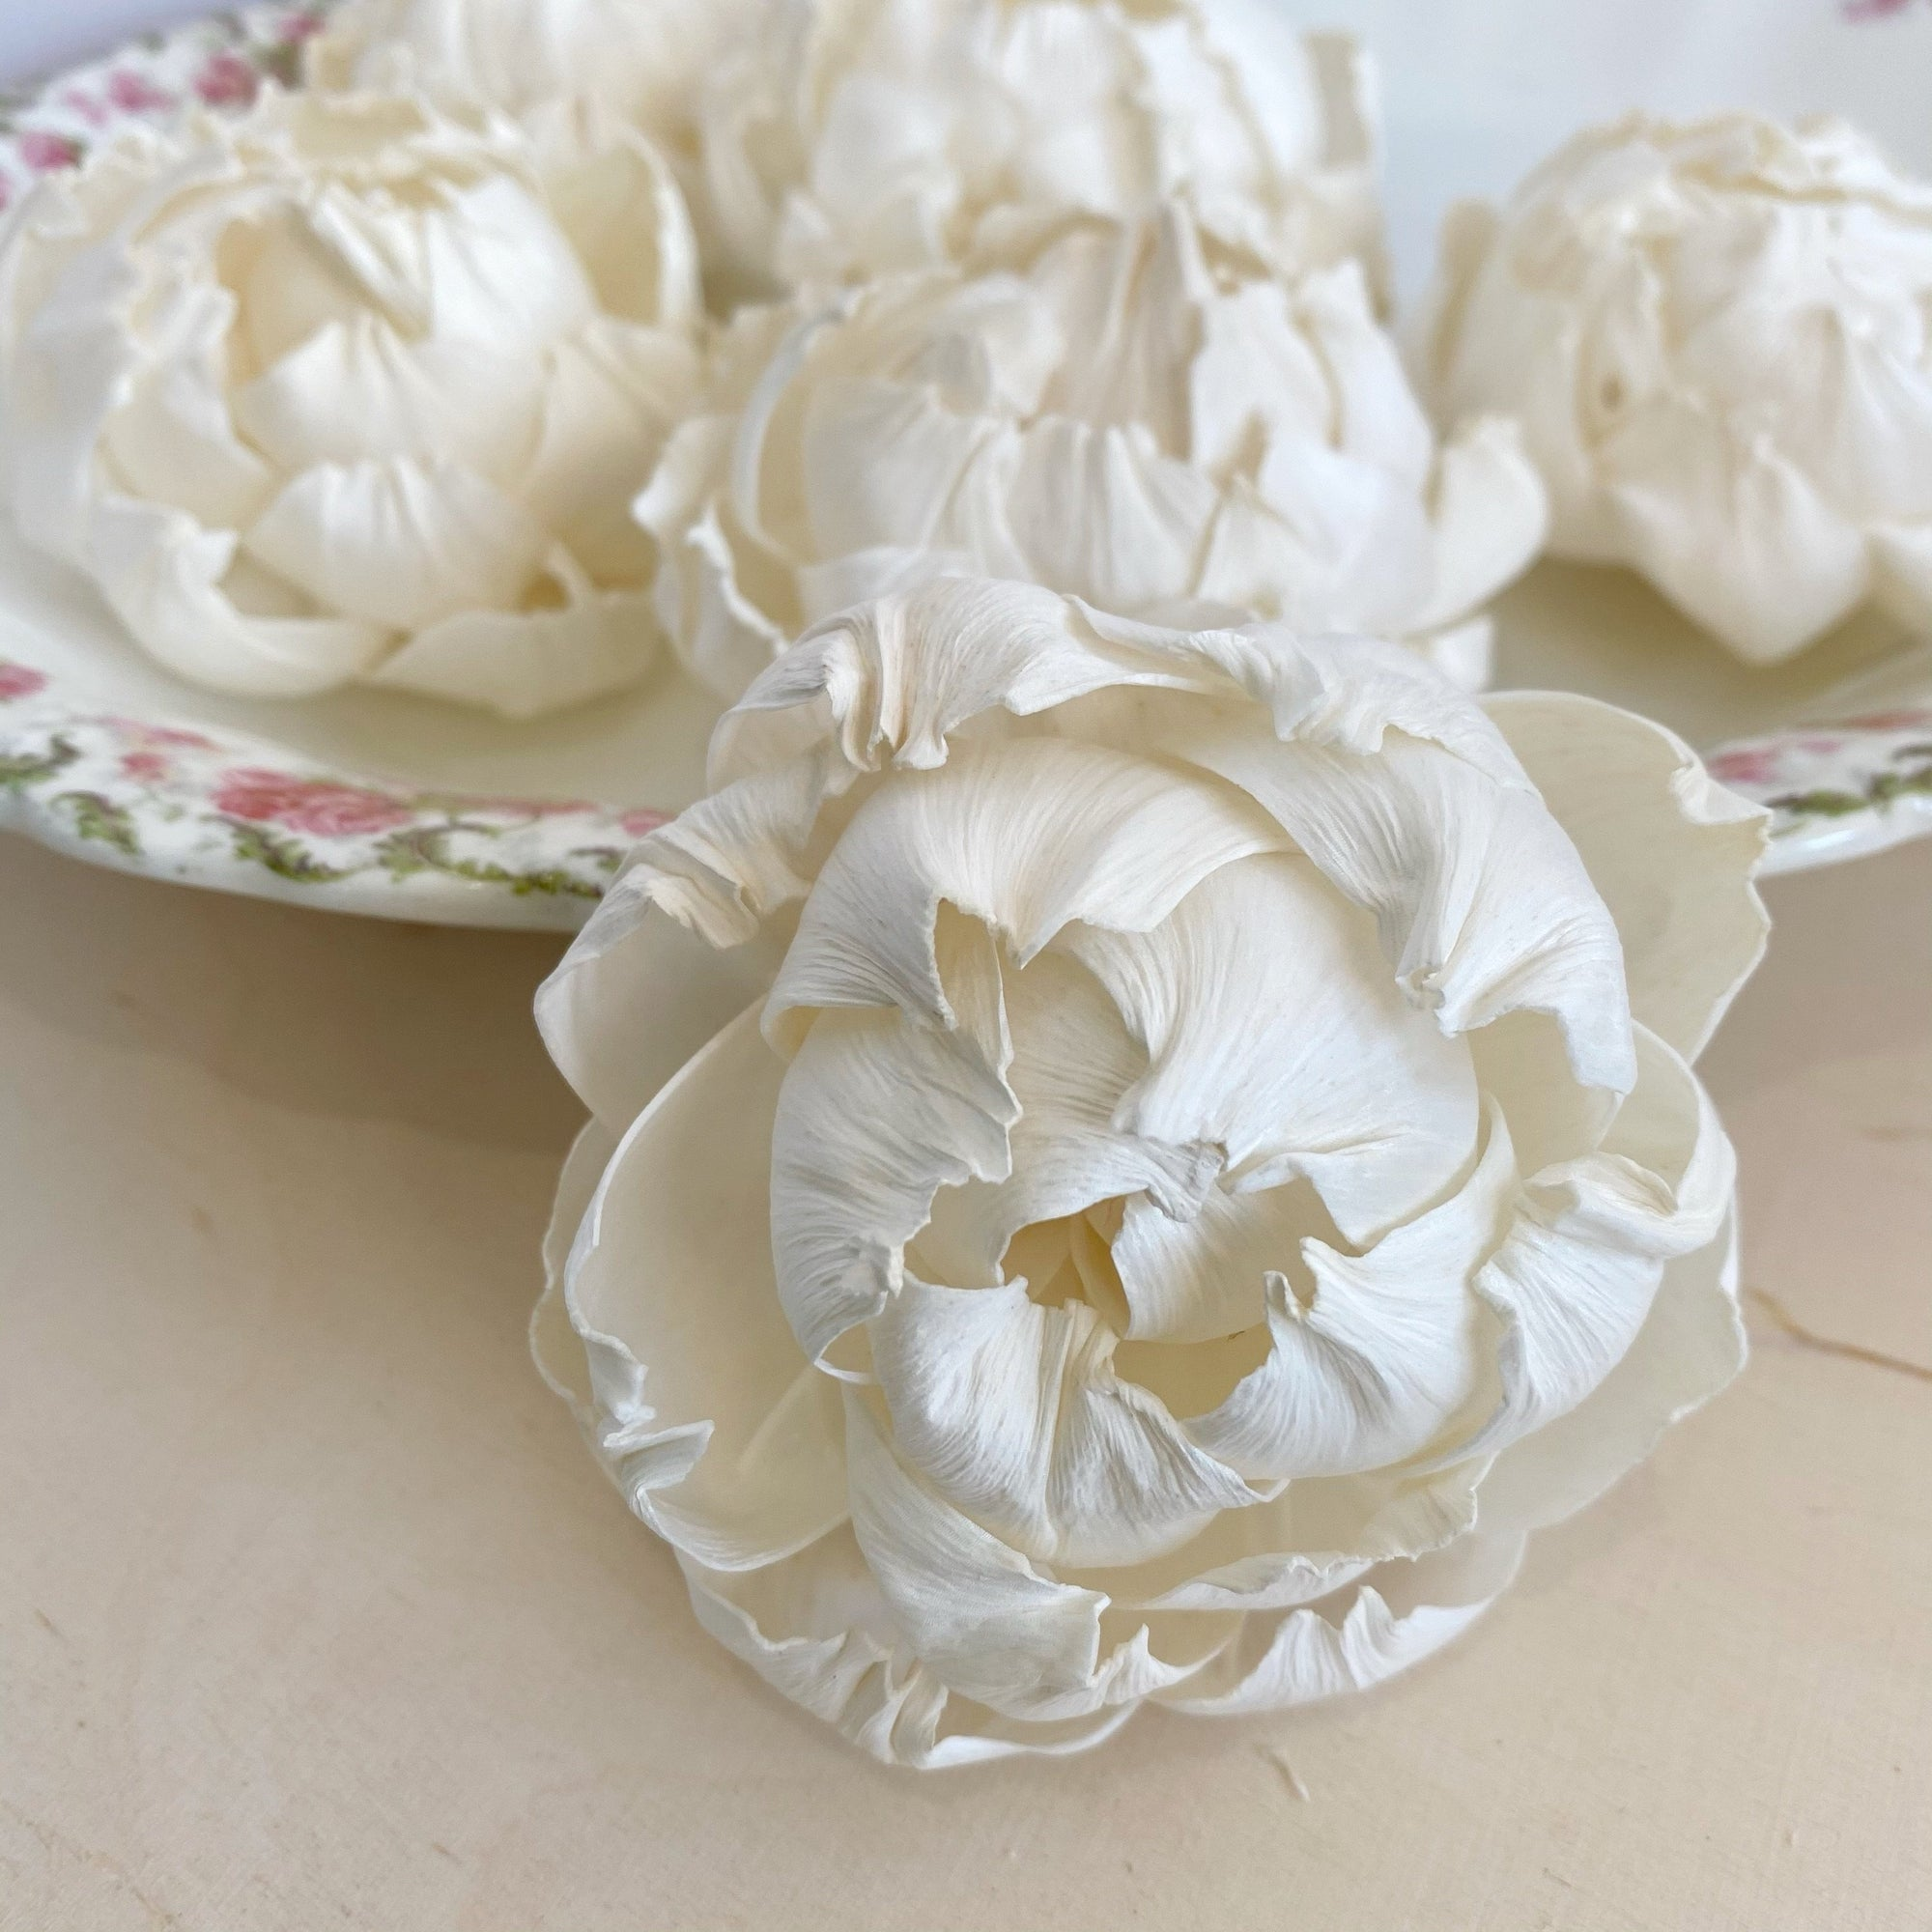 Luxe Peony - 3 inch - Set of 6 - Add on